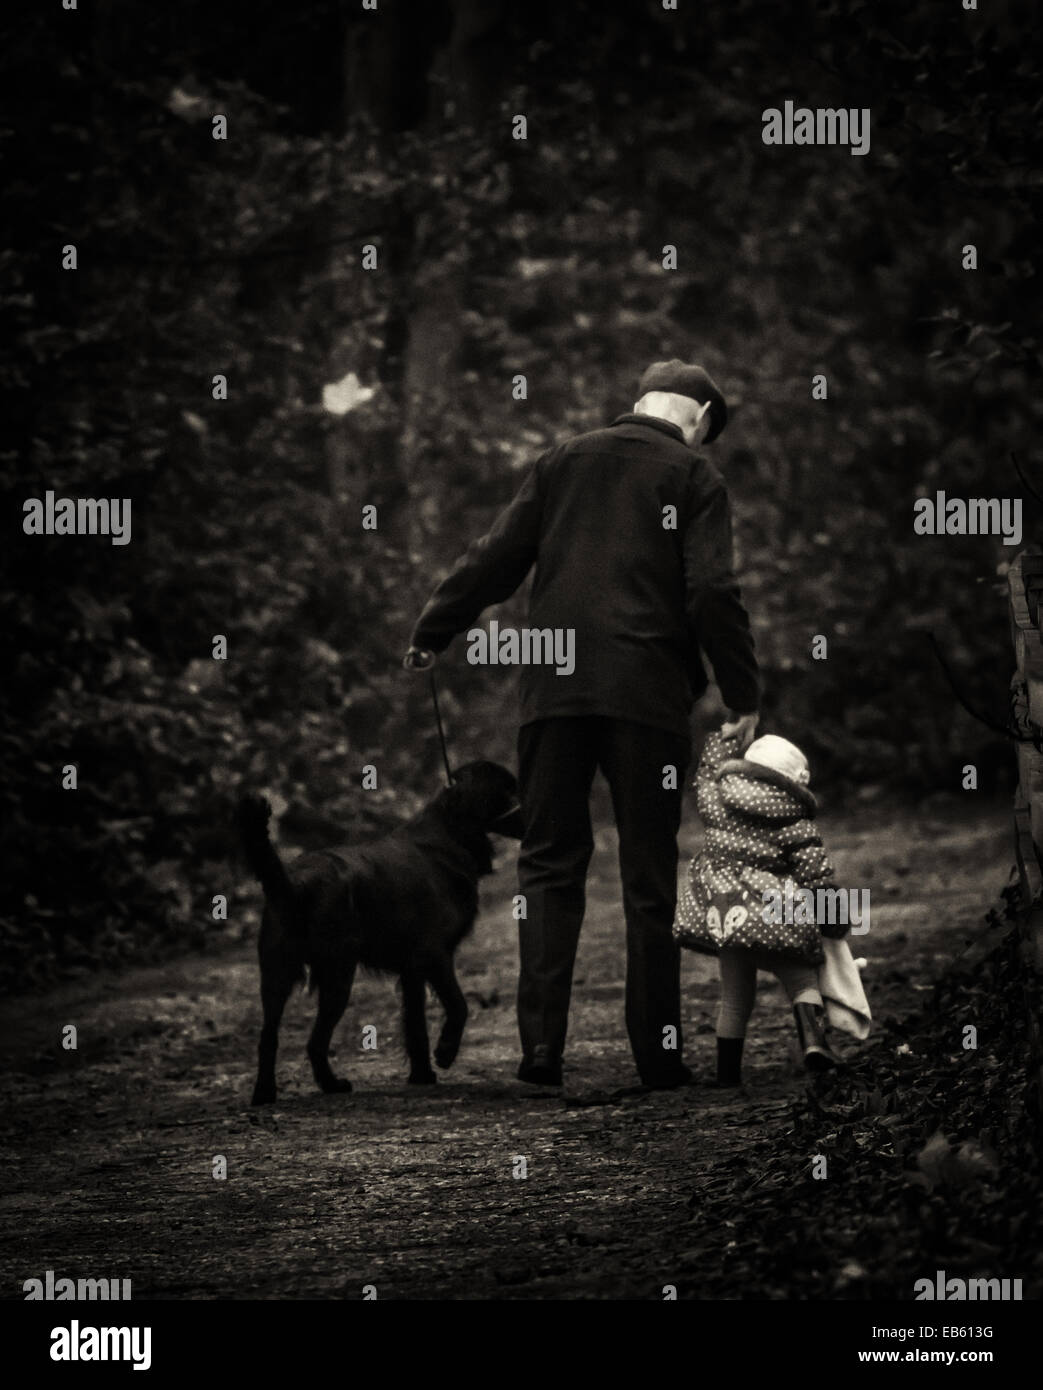 Older man with his hands full - grandad, grandchild and dog - Stock Image